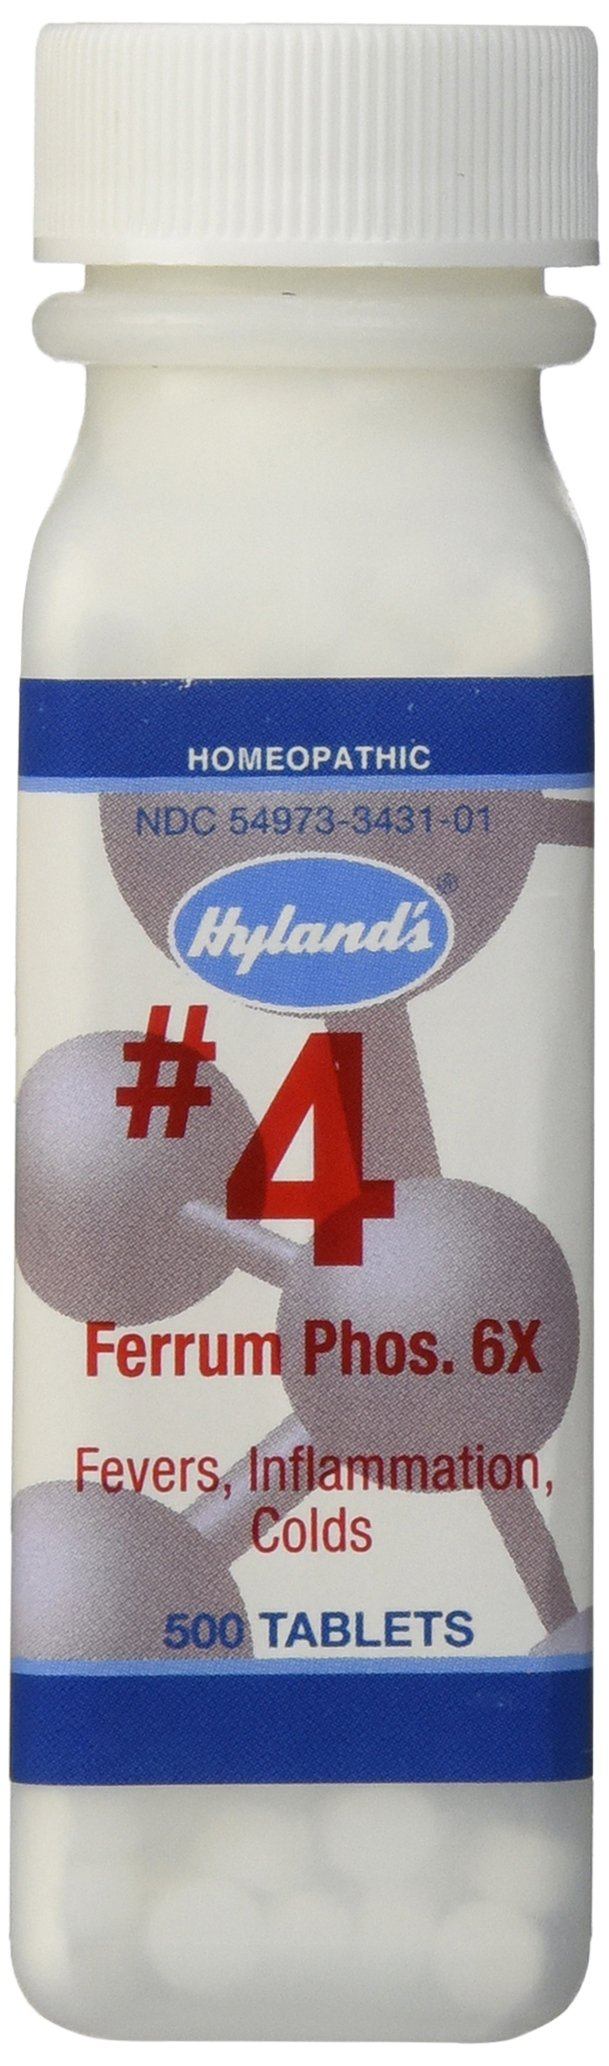 Decongestant and Sinus Relief, Inflammation Supplement, Natural Relief of Cold and Fever Symptoms, Hyland's #4 Cell Salt Ferrum Phos 6X Tablets, 500 Count